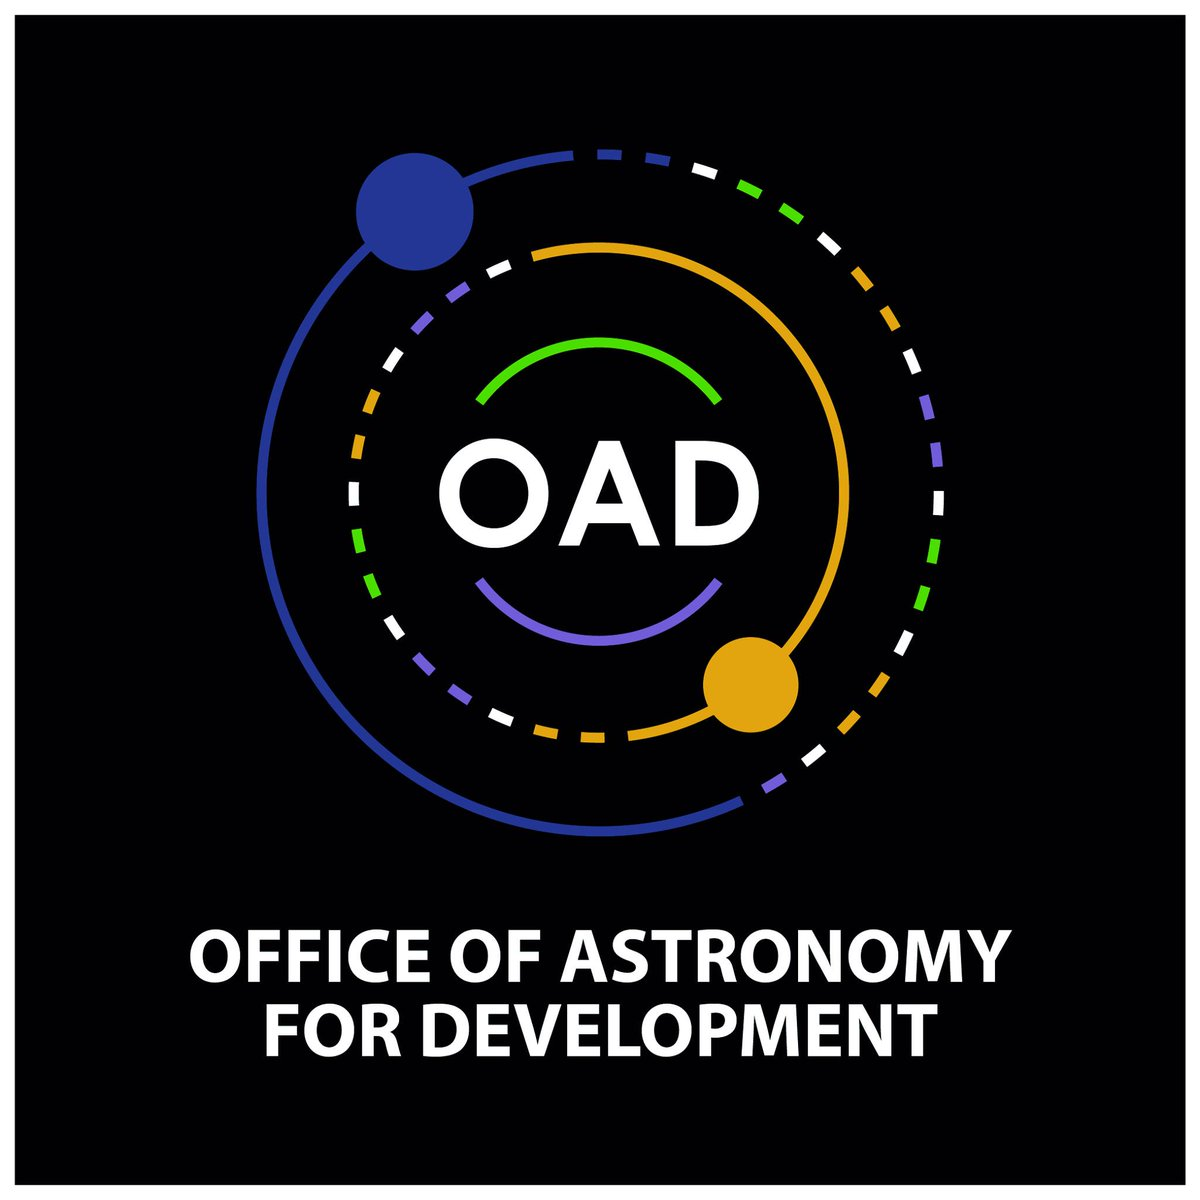 #Astro4Dev The @Astro4Dev Extraordinary Call for COVID-19 Related Proposals received 118 proposals. Four million ZAR (approximately 200k USD) was requested to reach people in nearly 60 countries. The results are expected to be announced in the coming weeks.